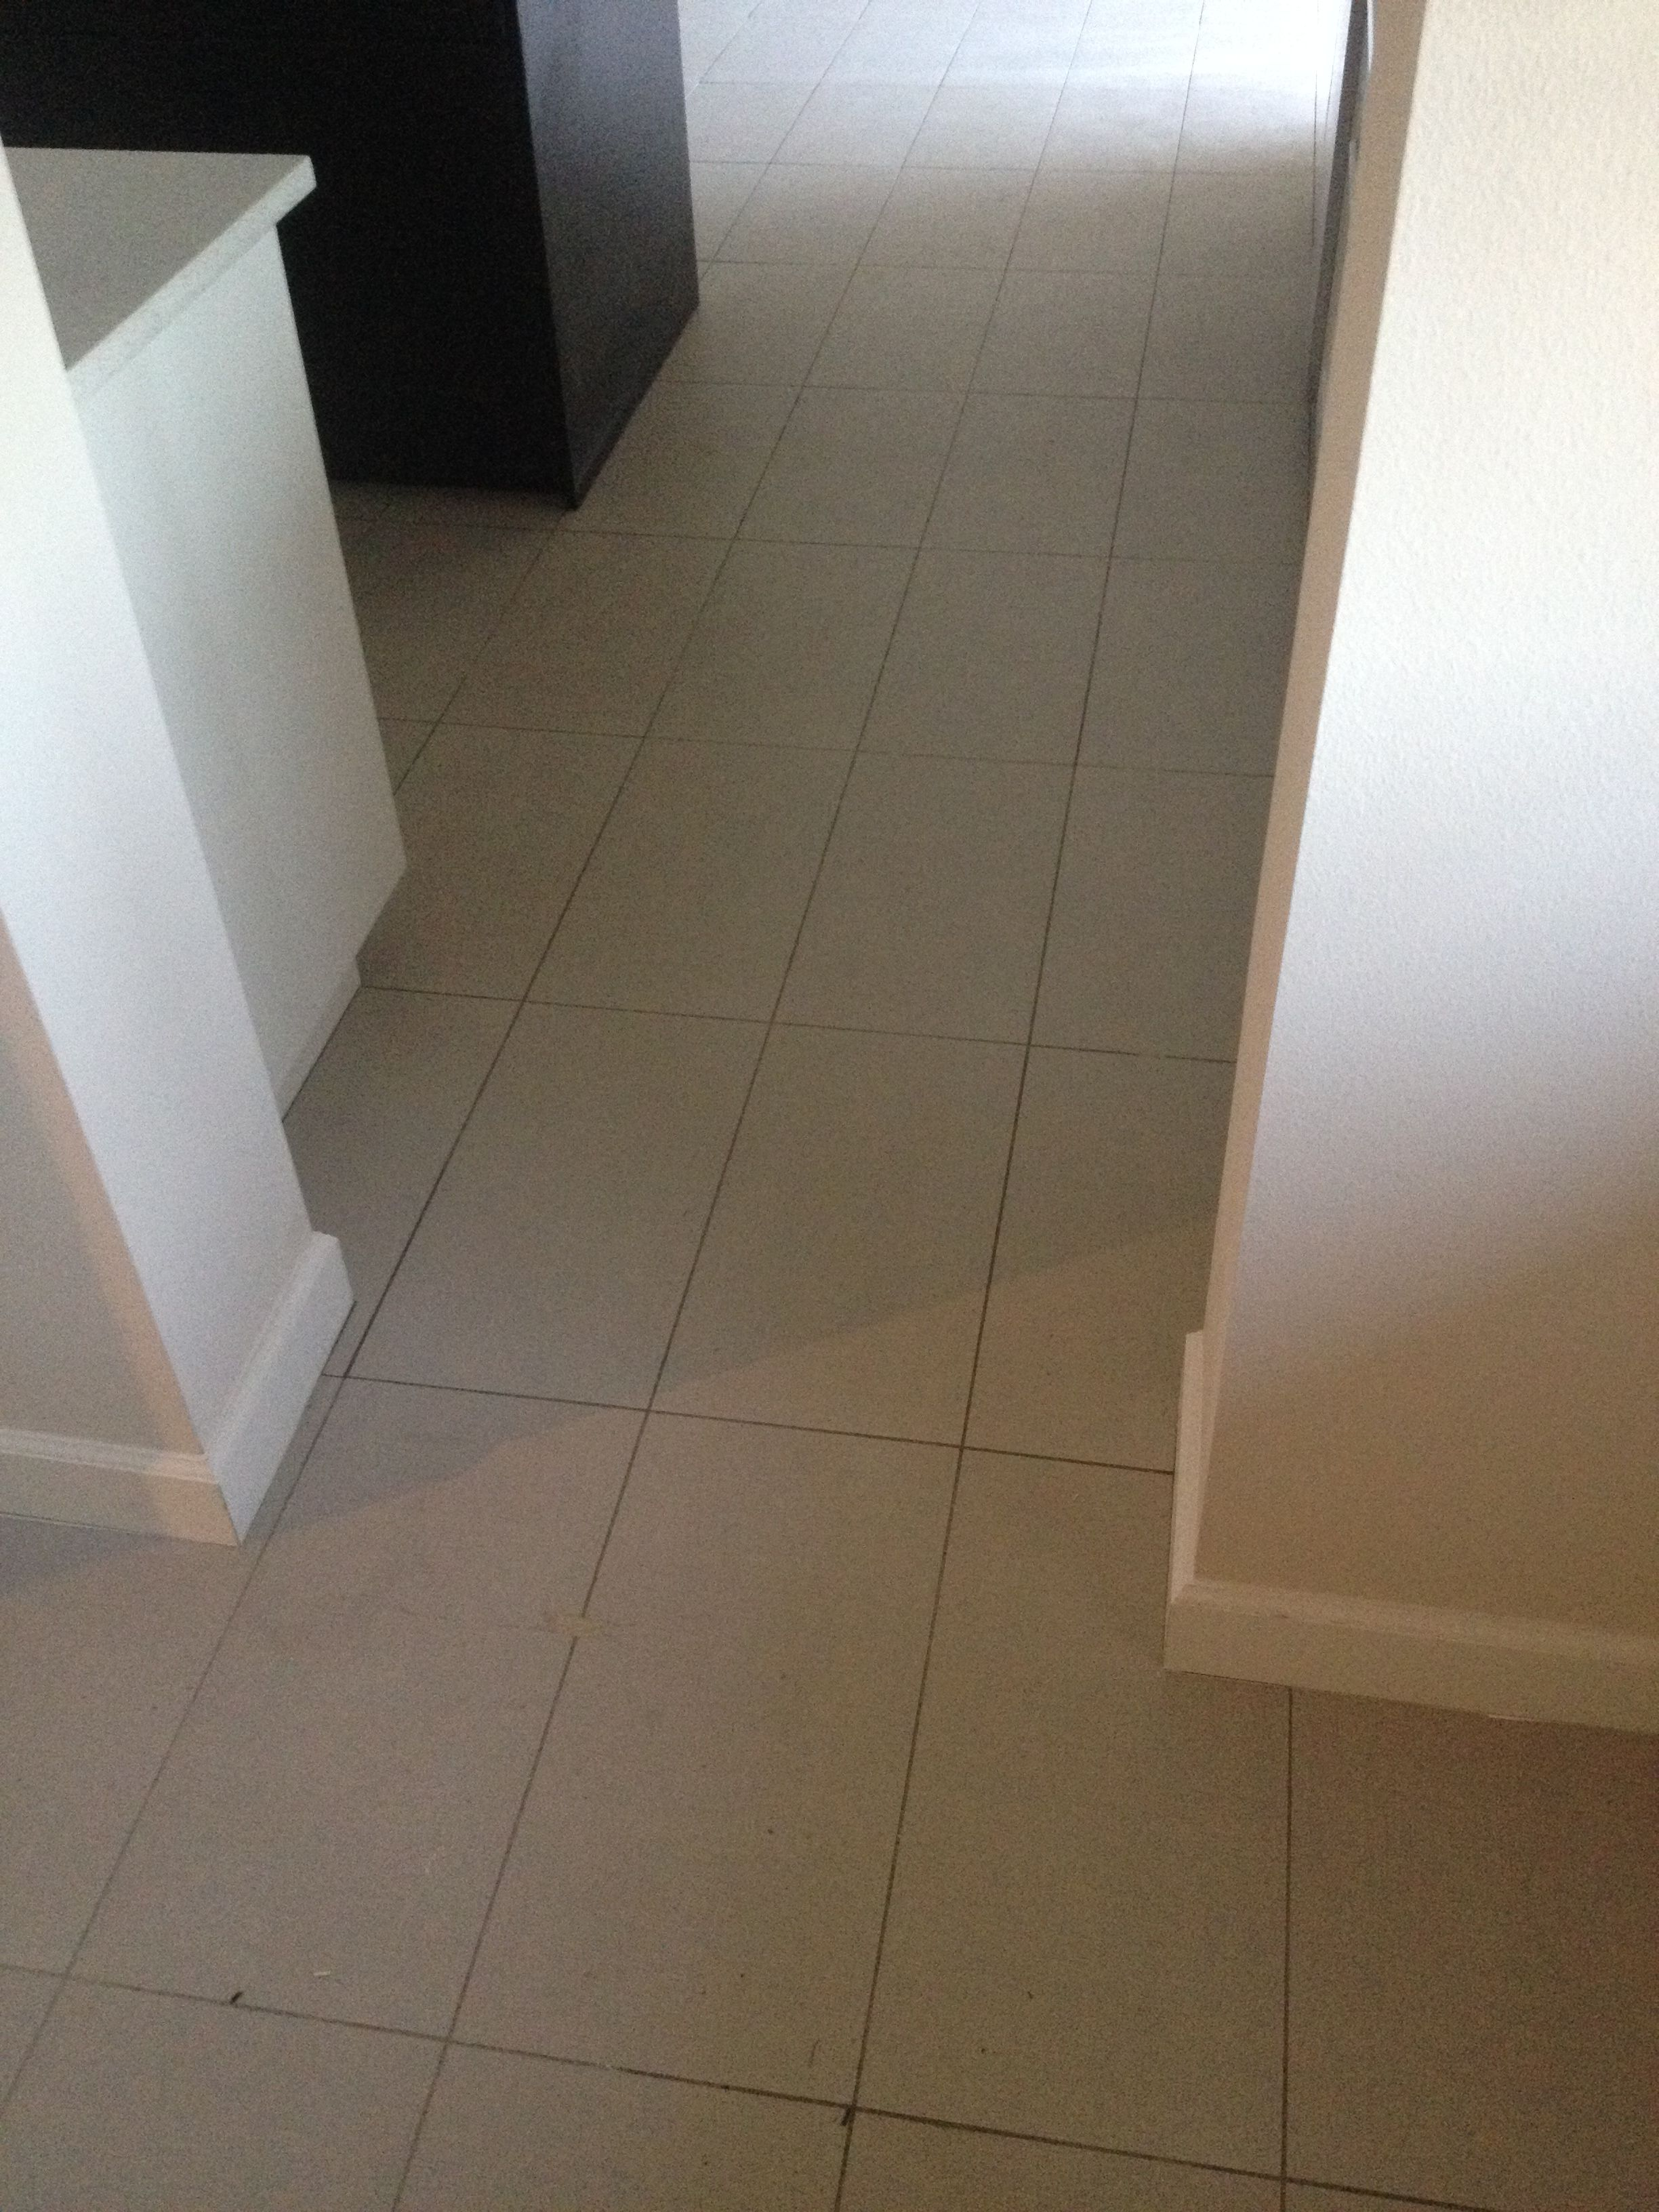 12 x 24 porcelain tile, straight lay, stack bond | finishes